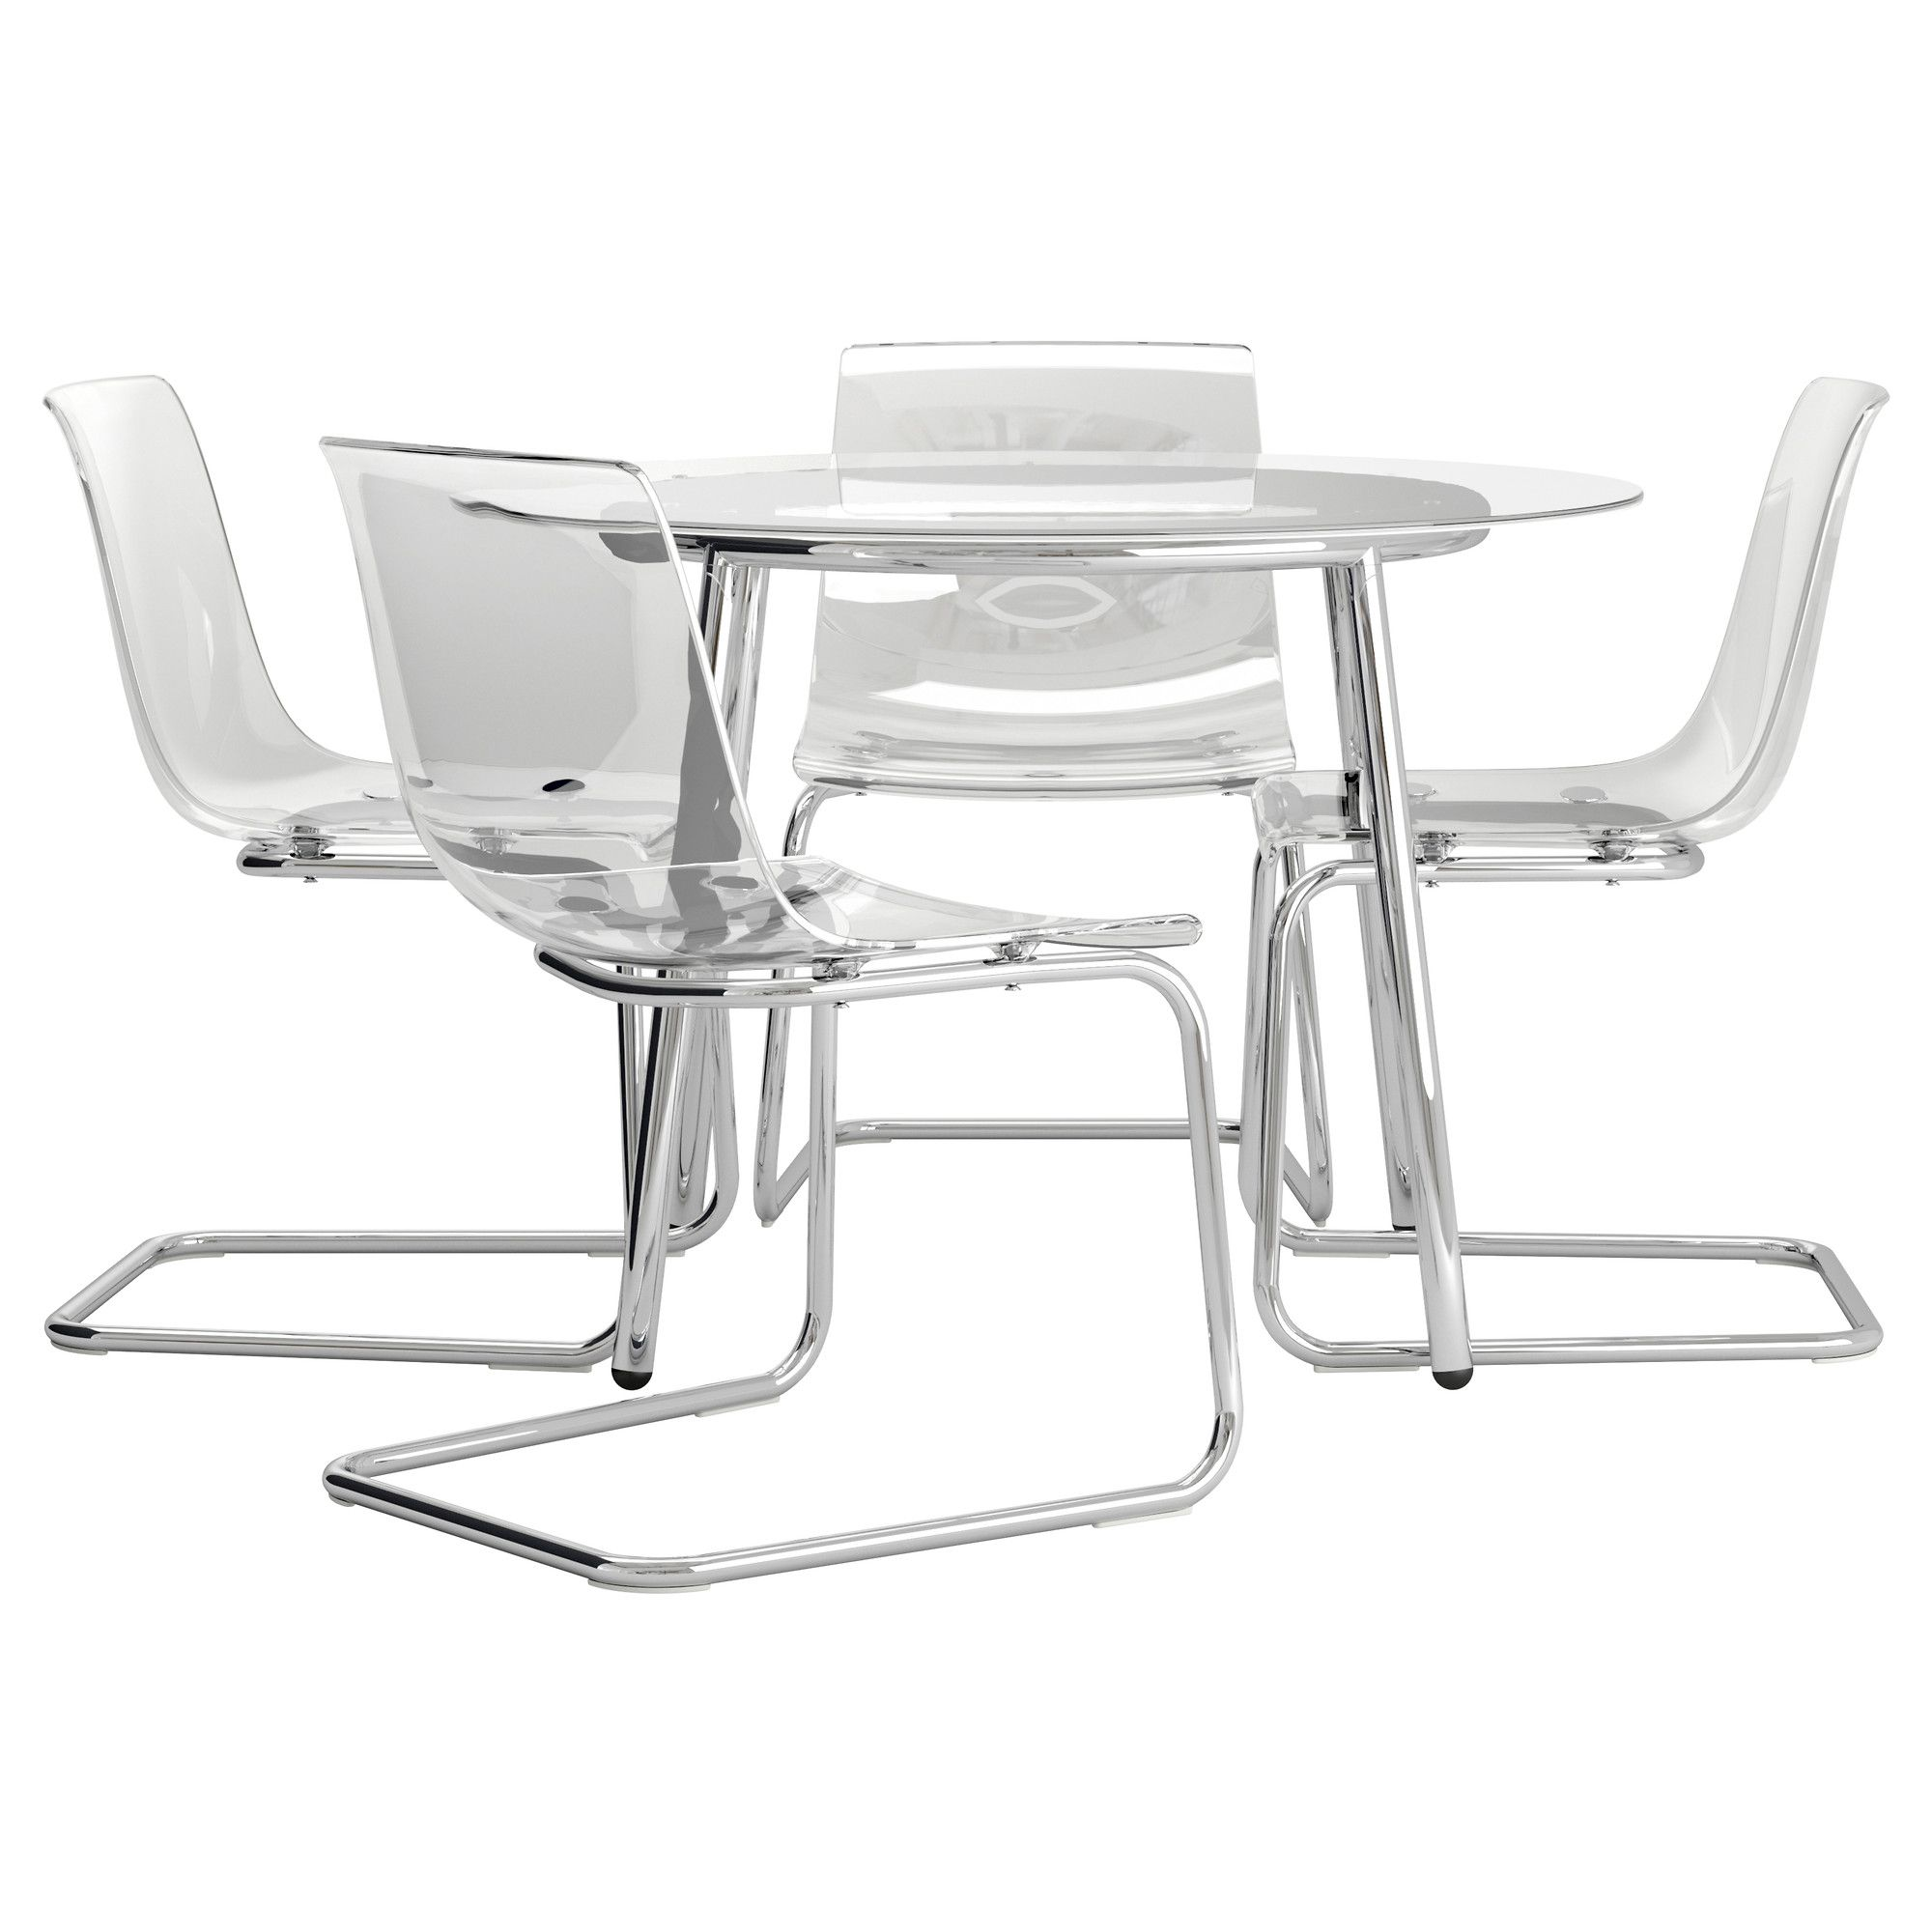 kitchen tables and more SALMI TOBIAS Table and 4 chairs IKEA 96 32 25 high